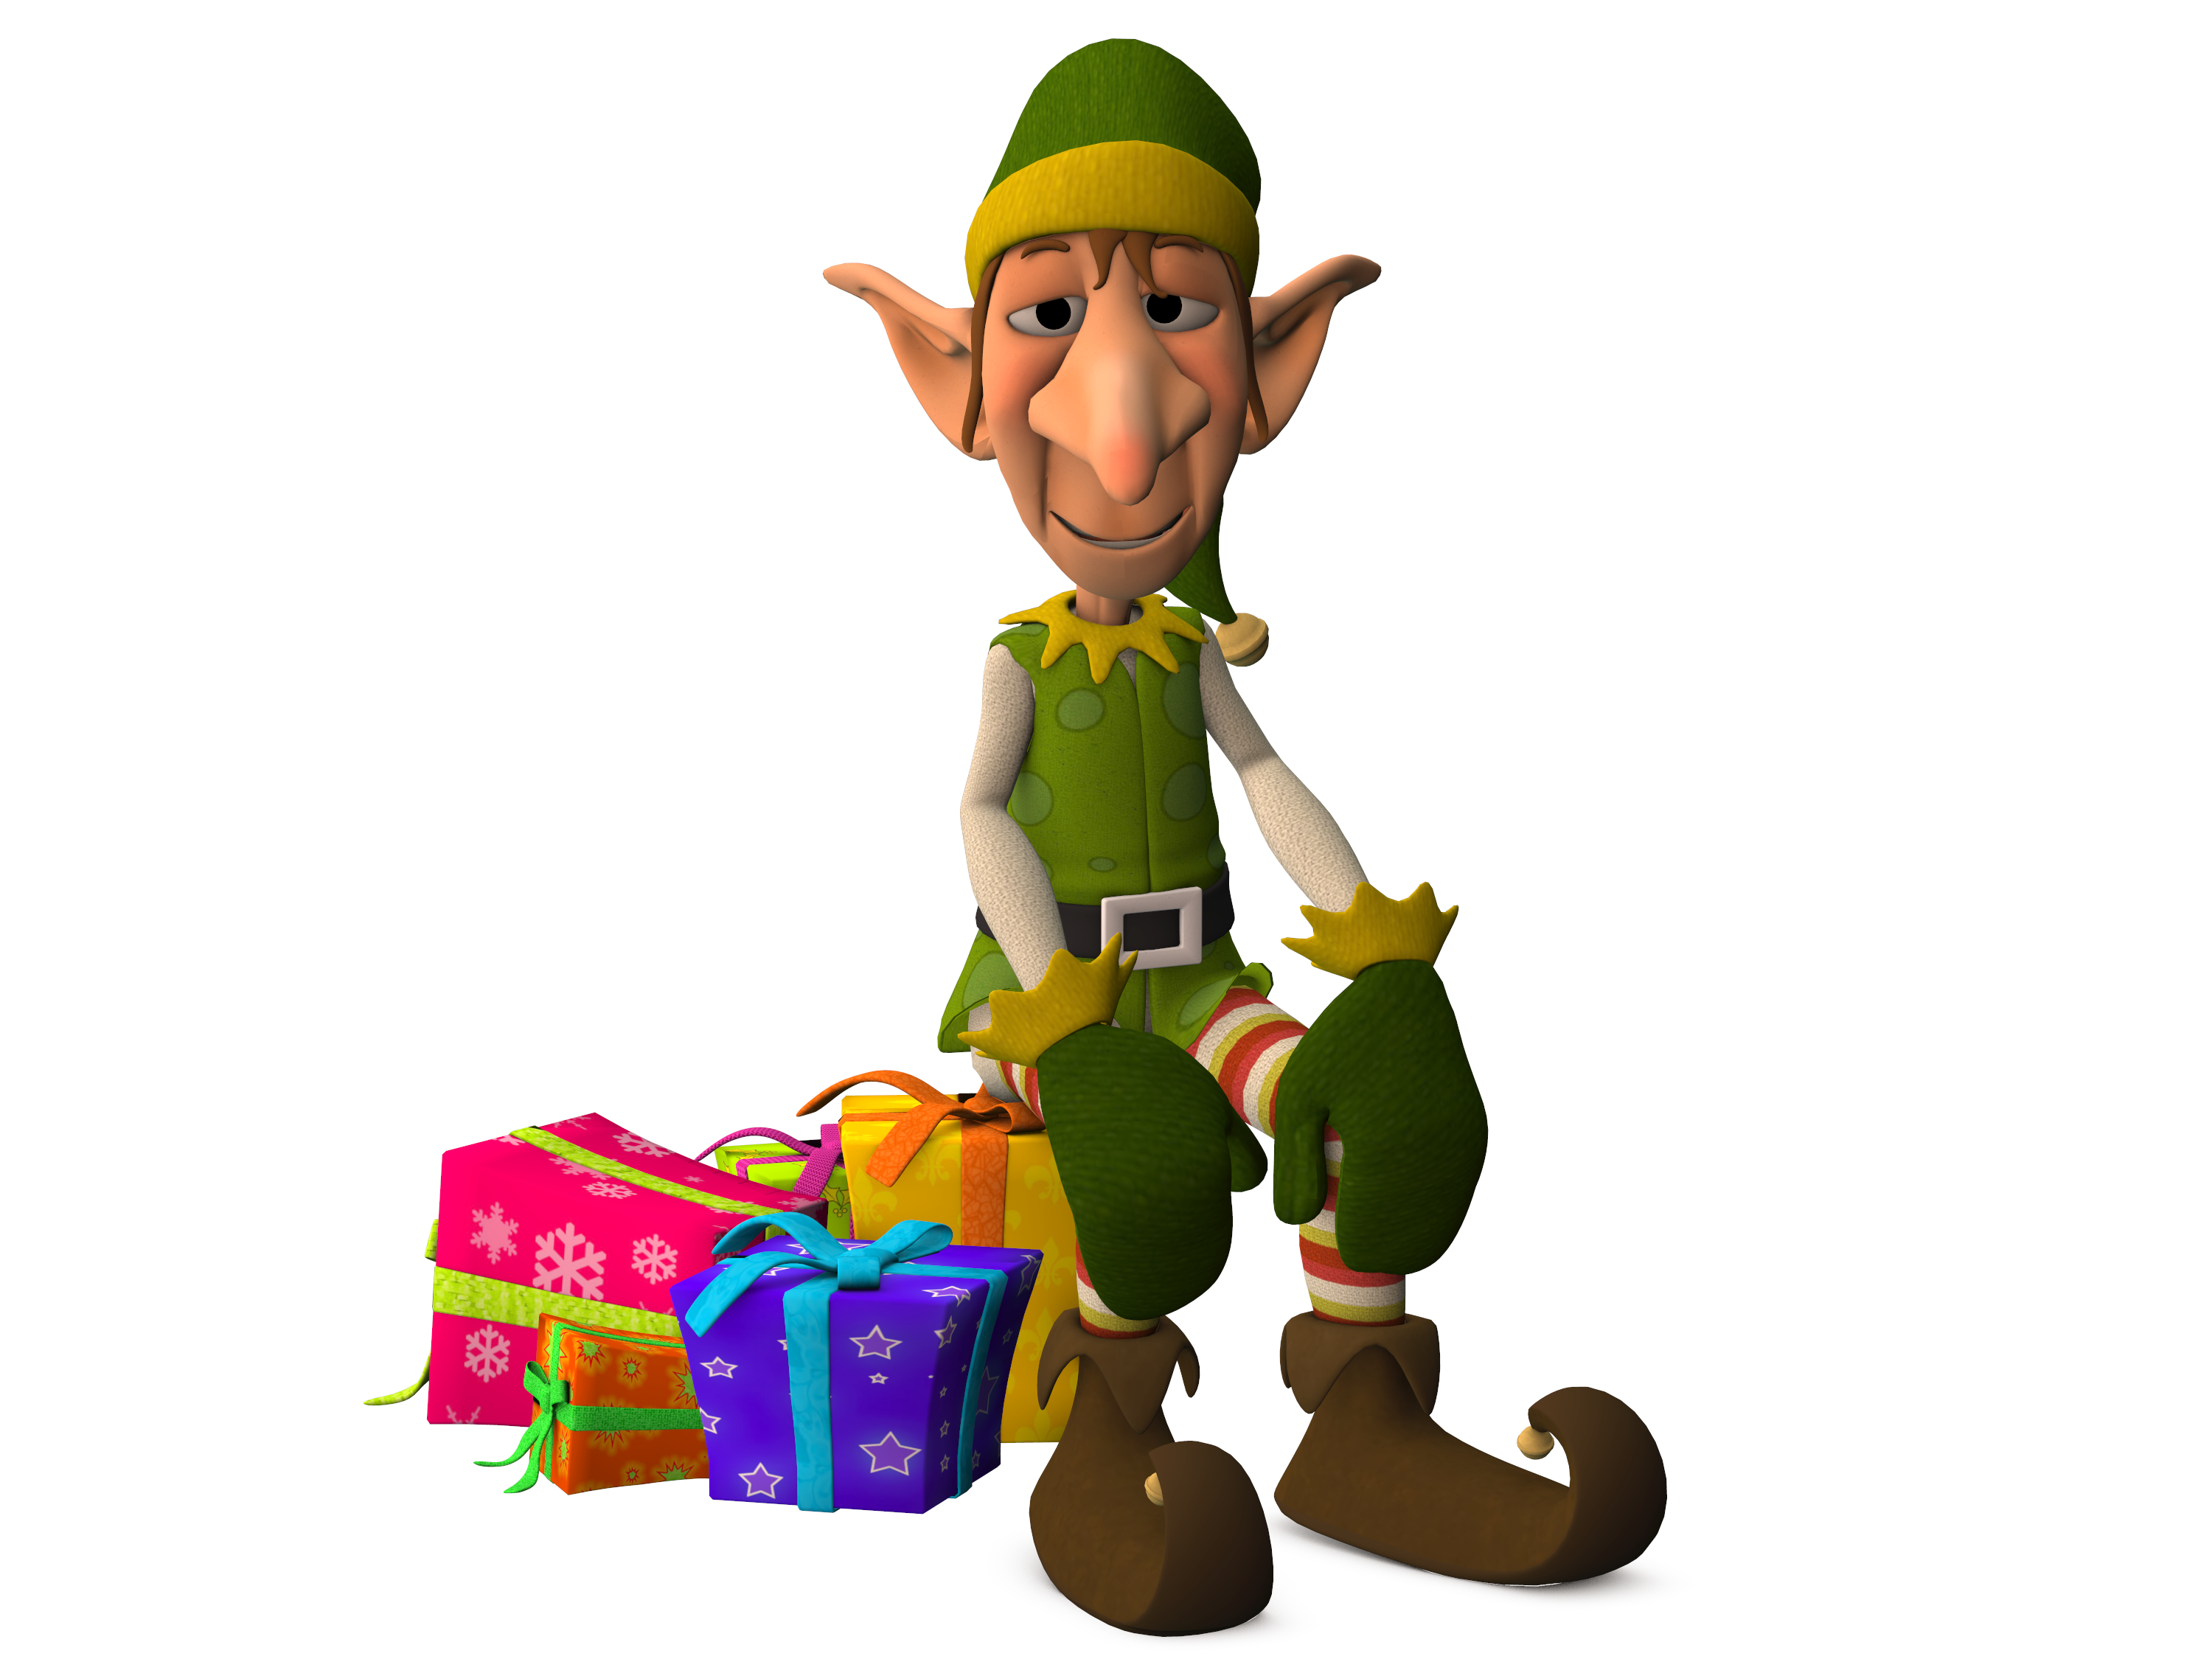 Christmas Elf Sitting on Presents image - Free stock photo - Public ...